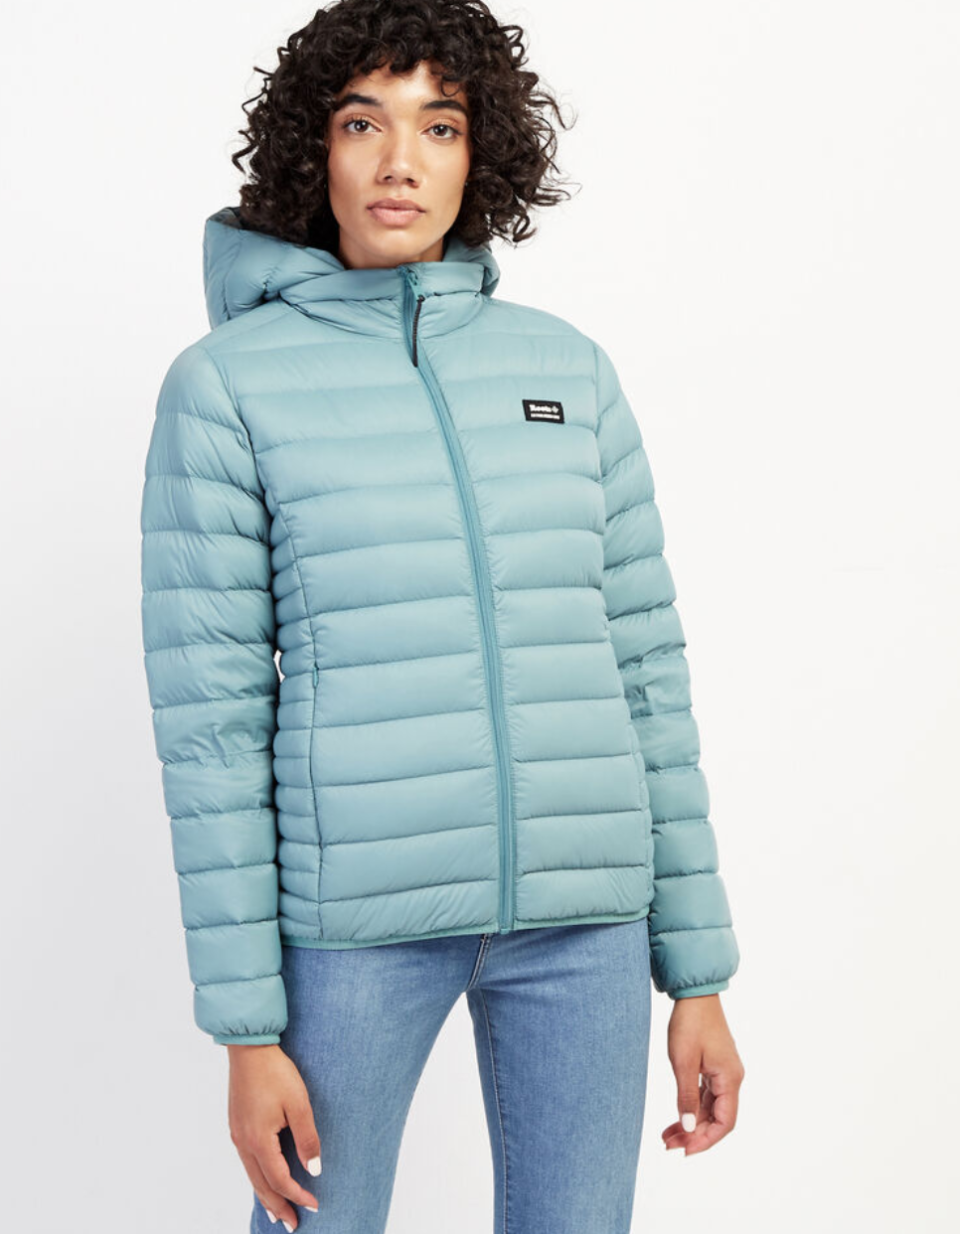 Roots Packable Jacket. Image via Roots.